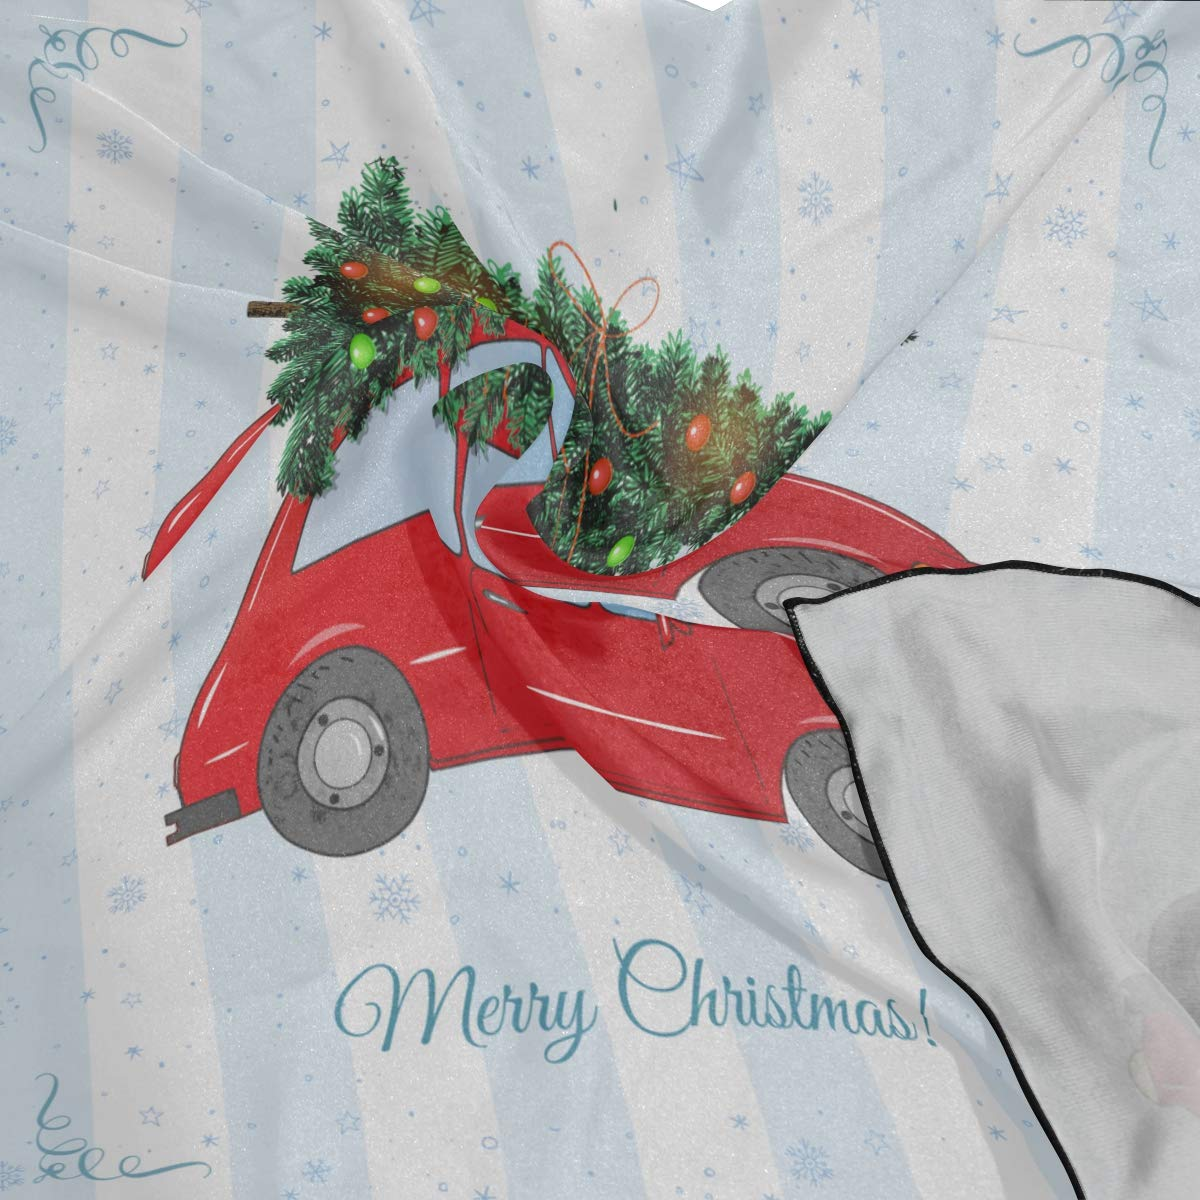 Soft Polyester Silk Hair Neck Scarf Fashion Print Red Car Carrying Christmas Tree Long Scarfs Scarf Thin Unique Scarves For Women Multiple Ways Of Wearing Daily Decor